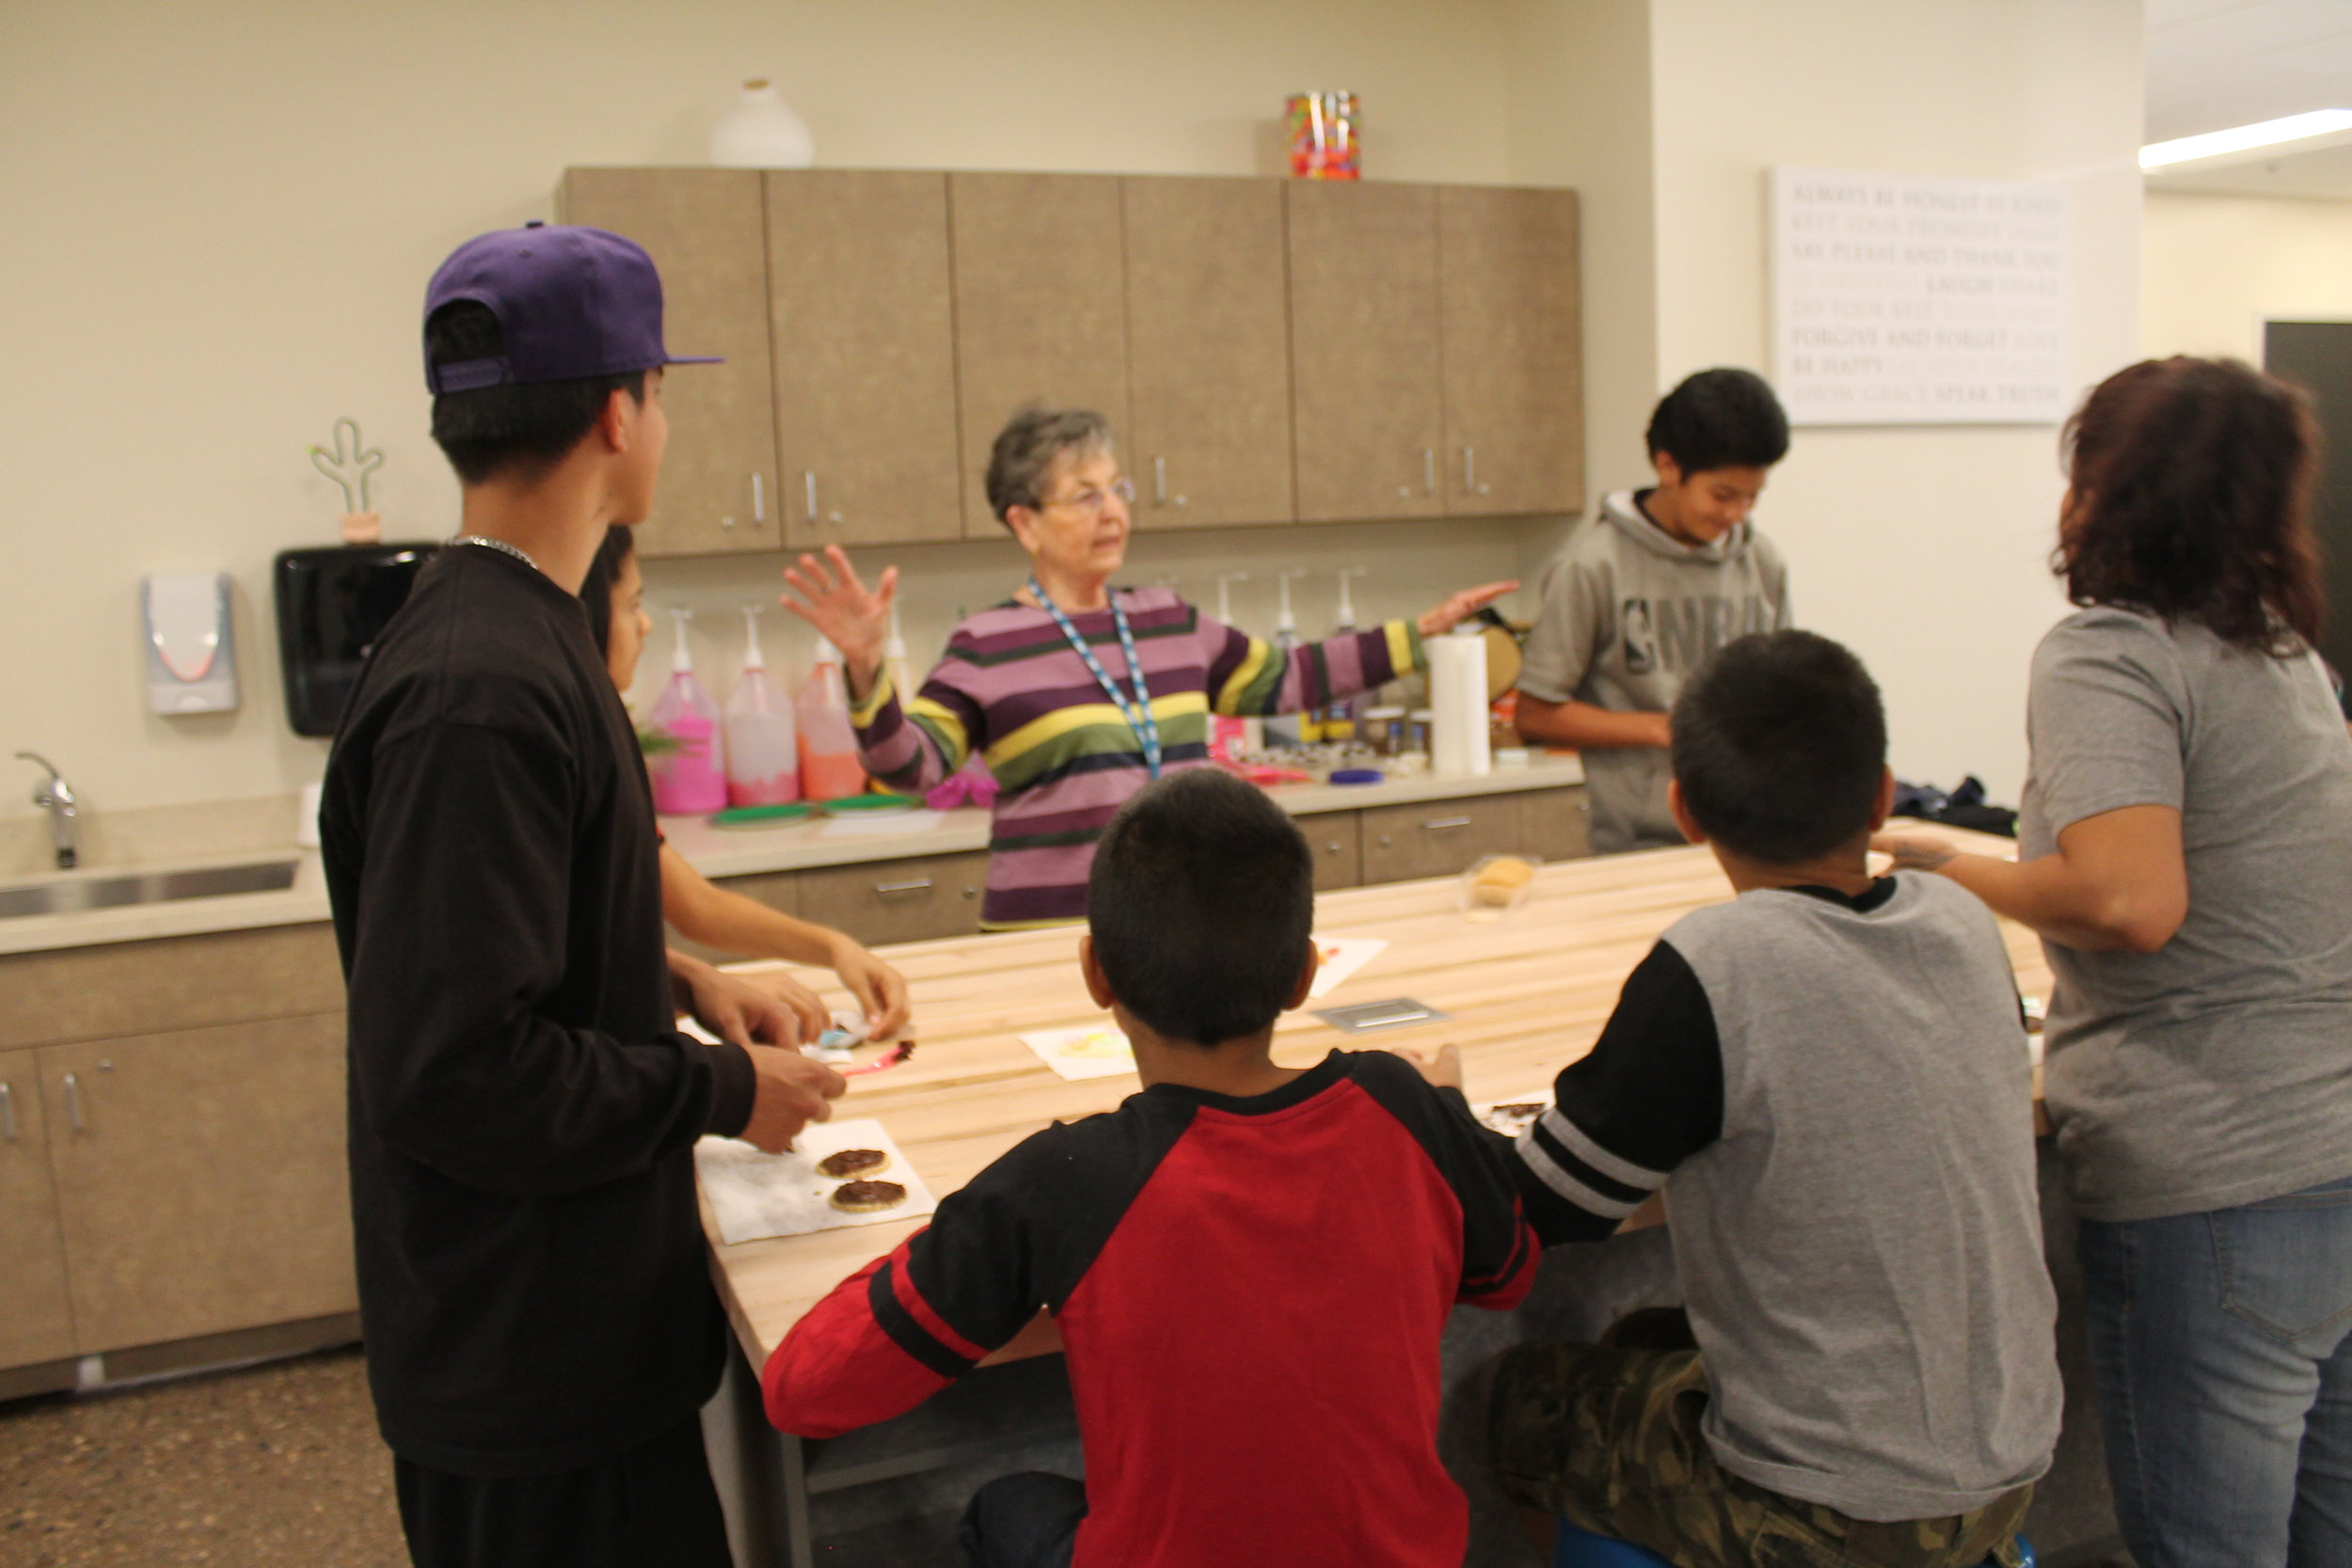 June Pomeroy helping the kiddos with frosting and sugar flowers decoration.